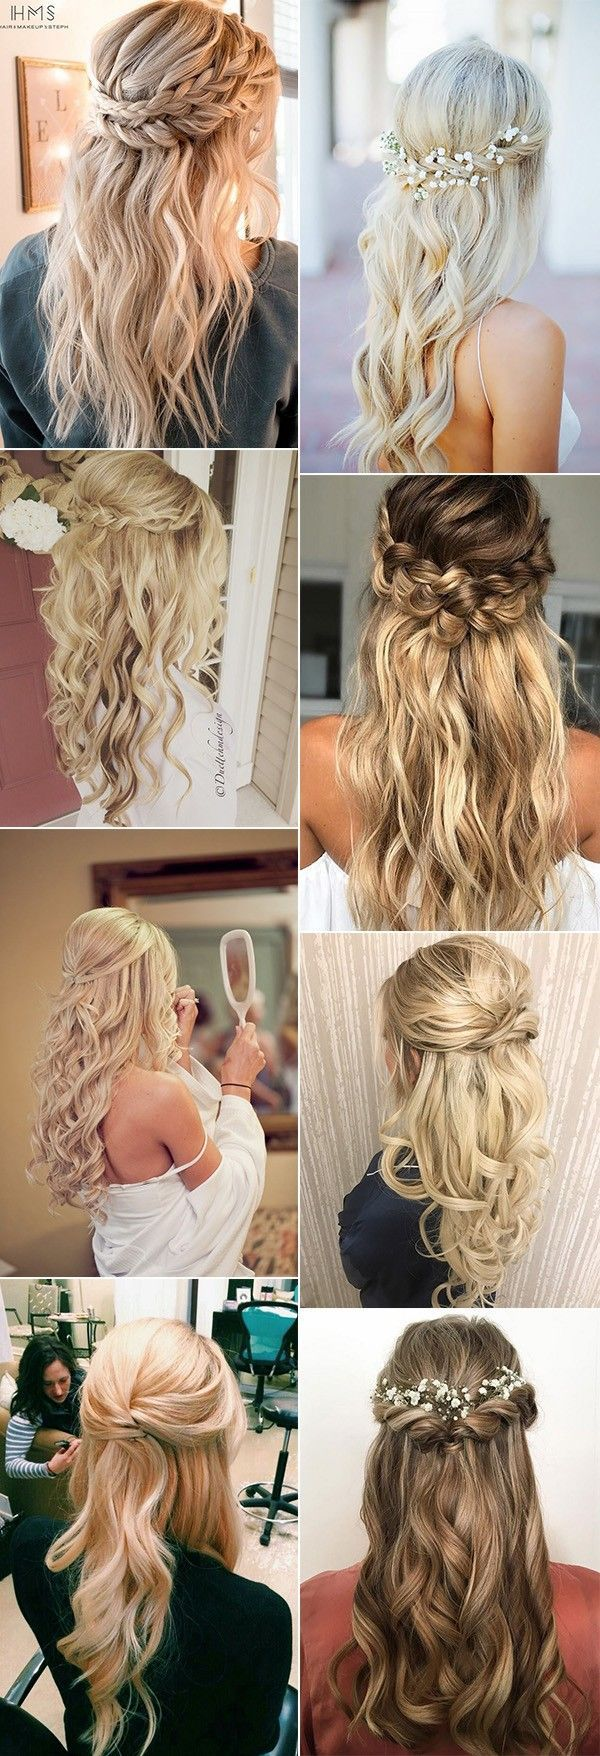 Chic half up half down wedding hairstyle ideas hairstyle for